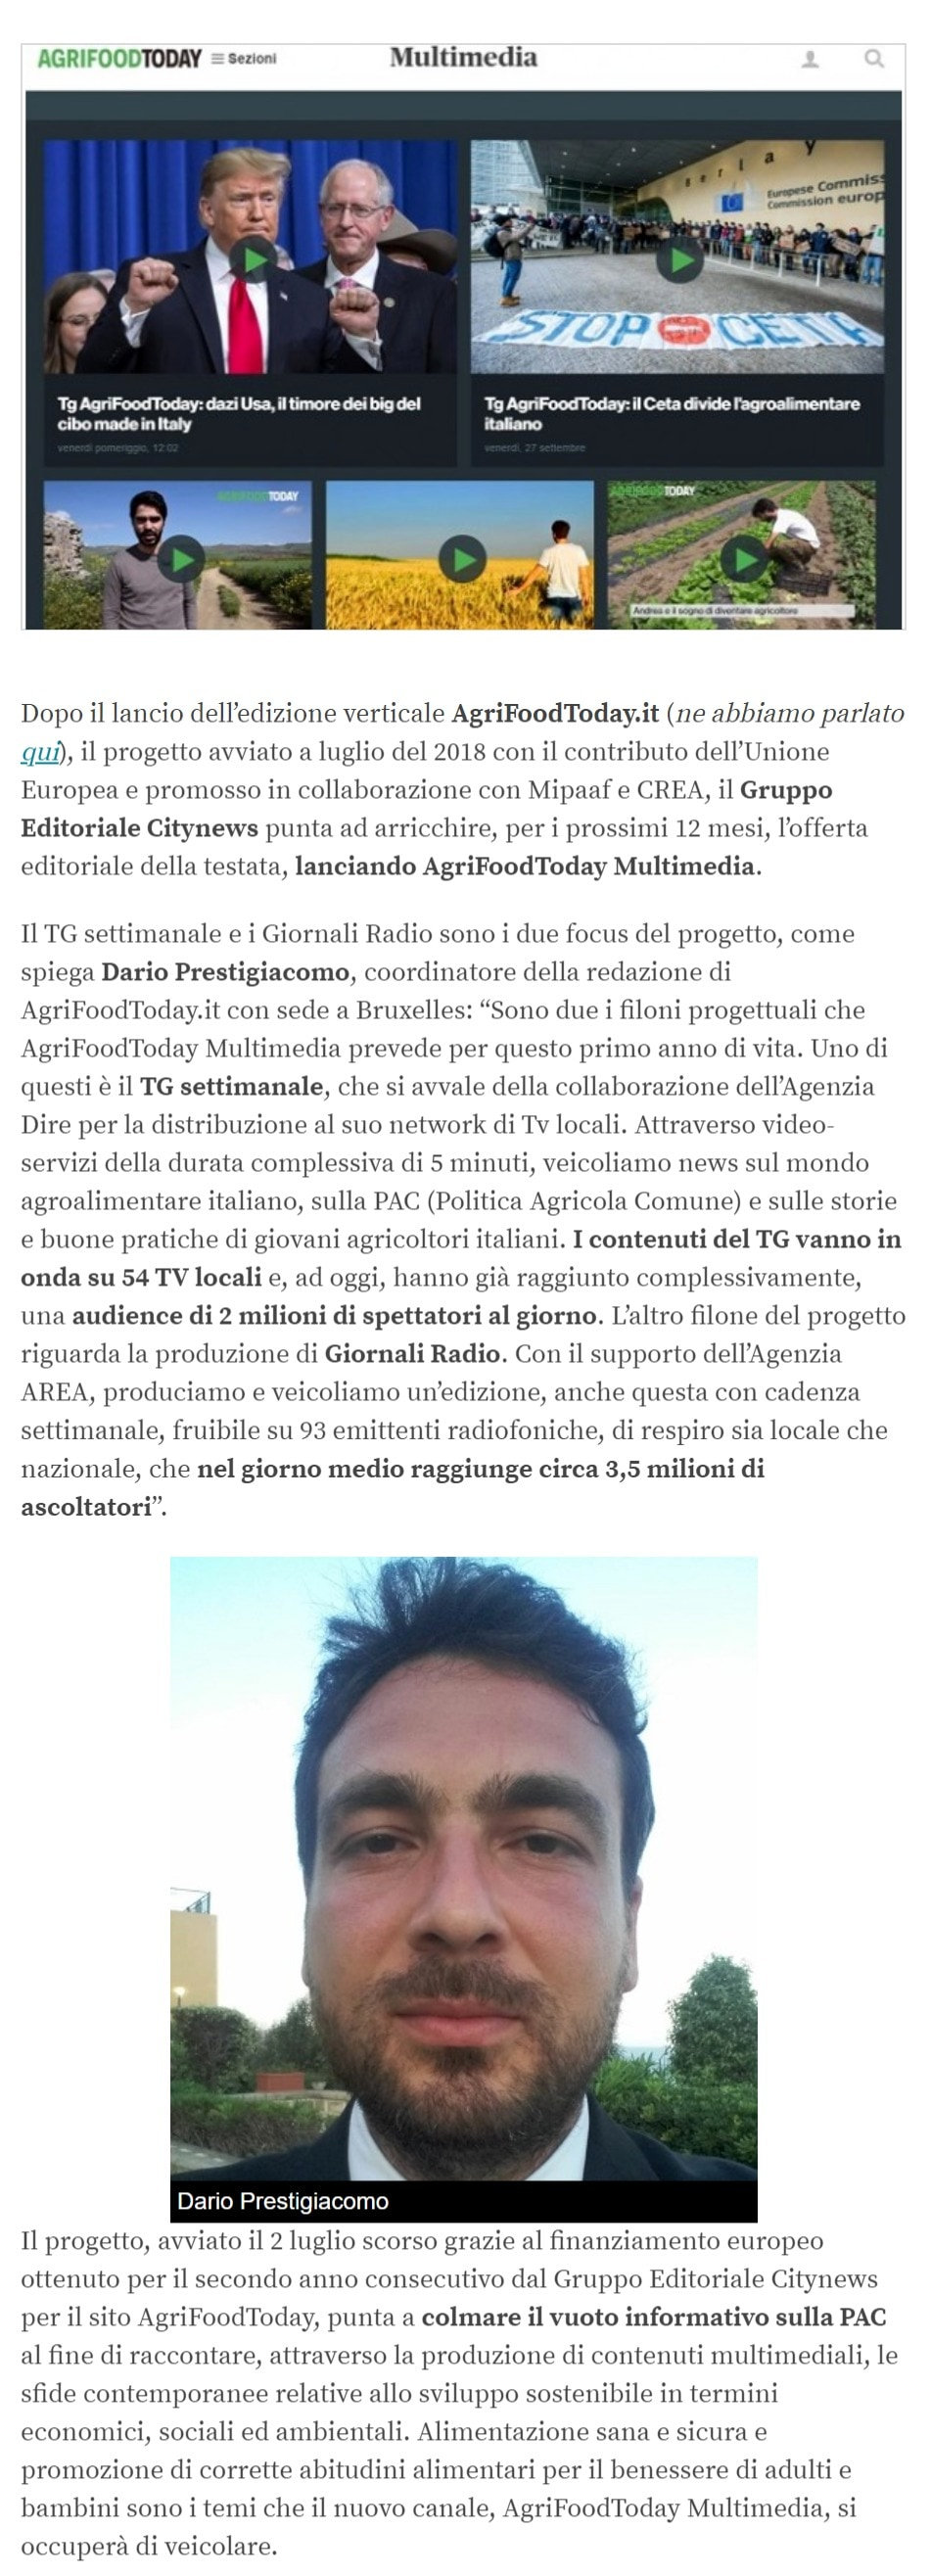 Citynews arricchisce AgriFoodToday con il lancio di AgriFoodToday Multimedia - Engage, 7 ottobre 2019 (1)-2